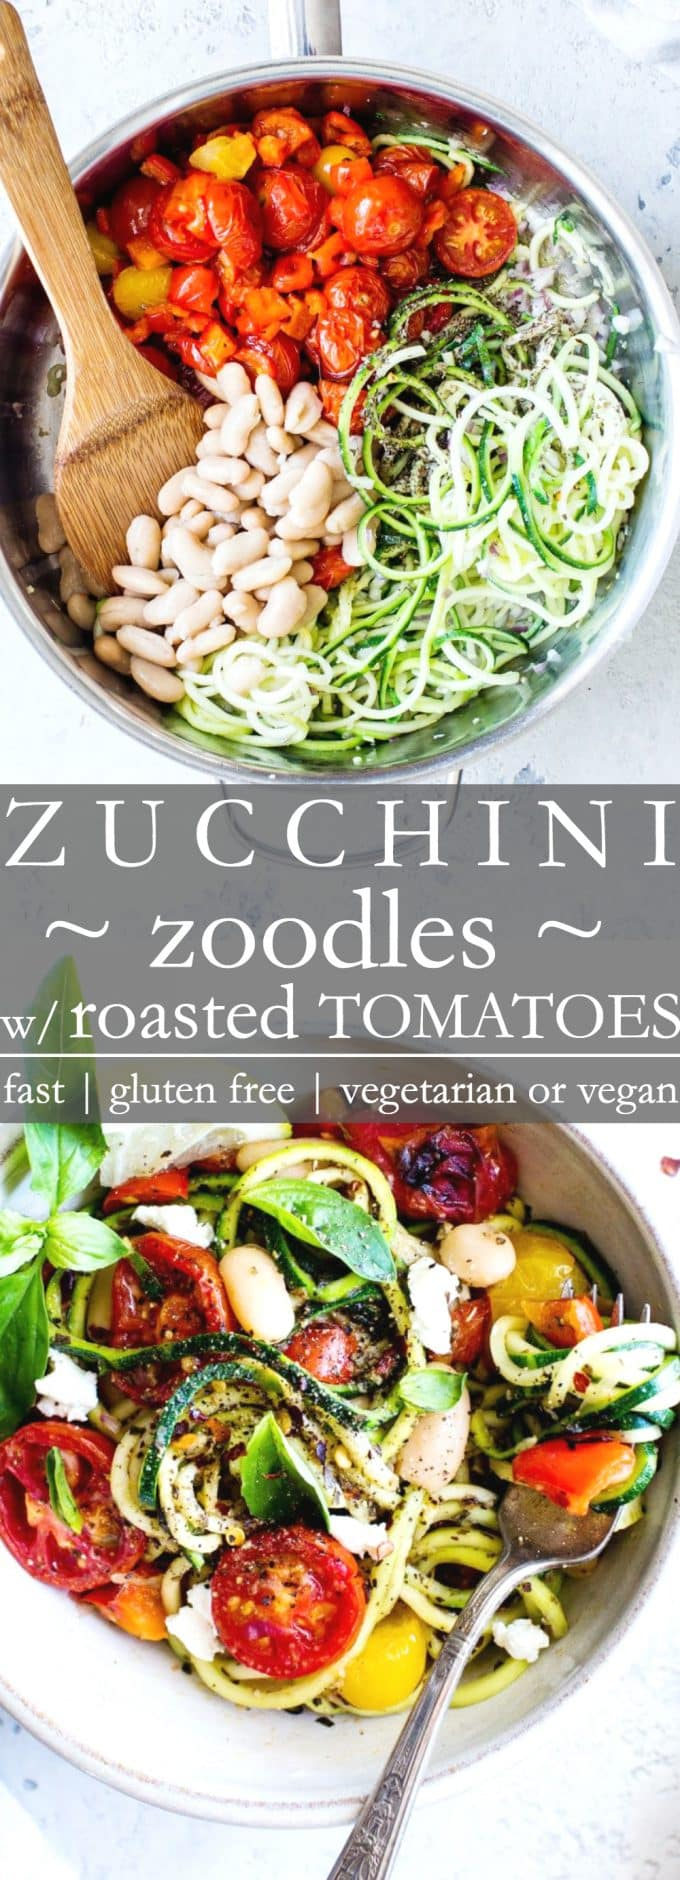 Zucchini Noodles with Roasted Tomatoes recipe: quick to pull together and packed with late summer veggies. I share how simple it is to cook zucchini noodles in a fabulous and easy zoodles recipe. A healthy pasta alternative when zucchini is in season! #VegetarianFood #VeganFood #Recipe #Zoodles #ZucchiniNoodles